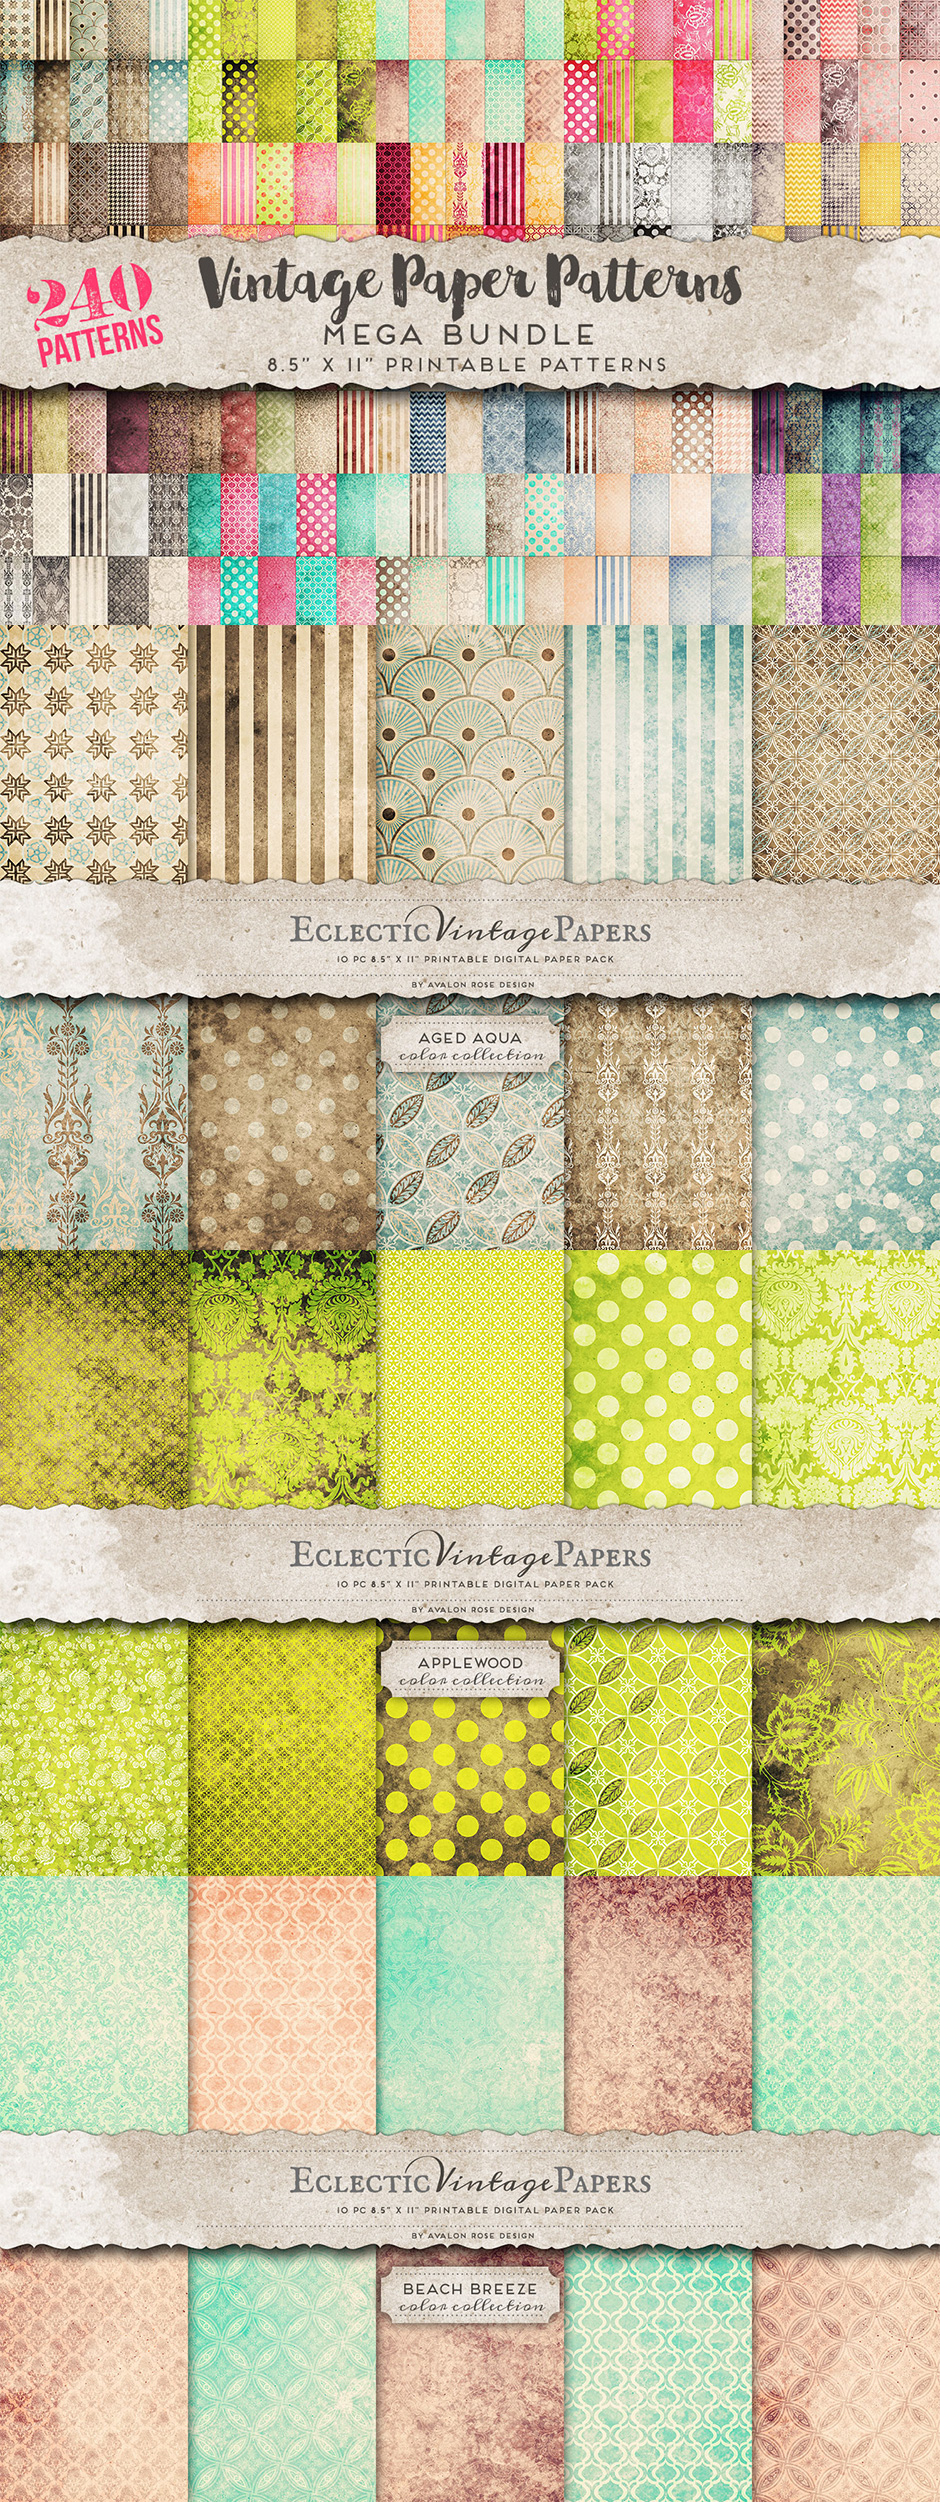 The Gigantic Textures and Patterns Bundle